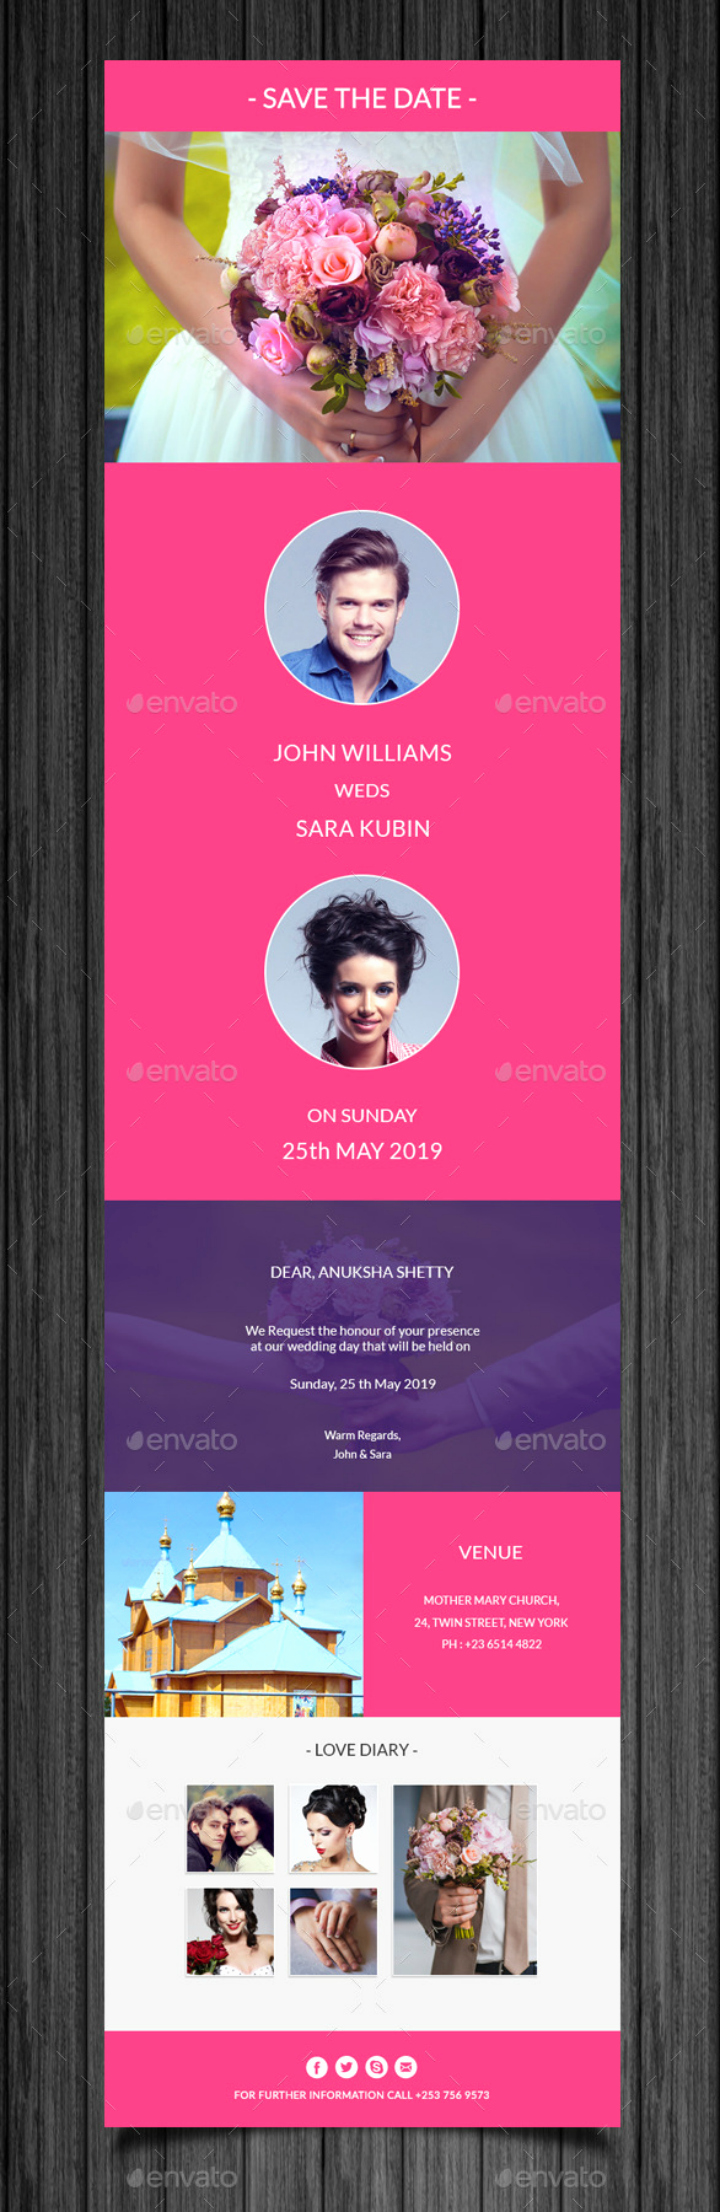 Email Wedding Invitation Template Lovely 14 Wedding Email Designs & Templates Psd Ai